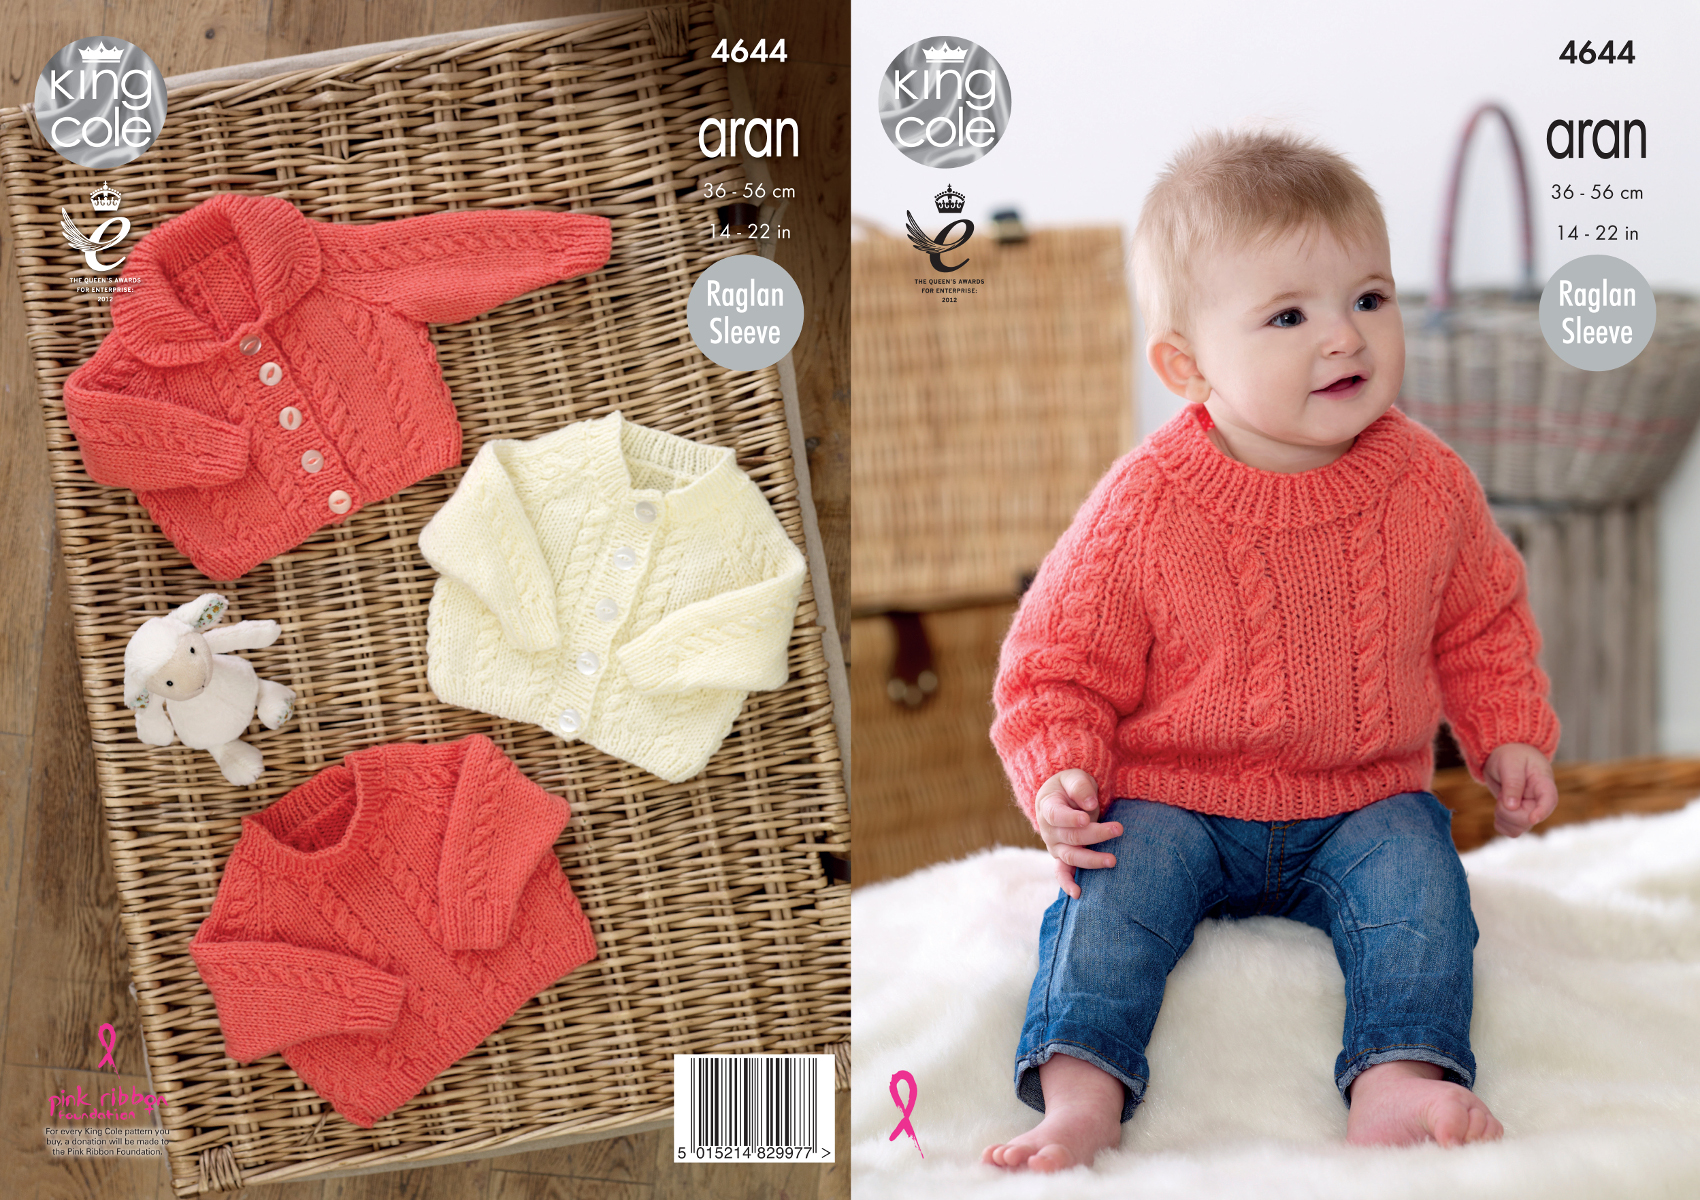 Knitting Pattern Raglan Sleeve Baby Cardigan : Knitting Pattern King Cole Baby Aran Raglan Sleeve Cabled ...